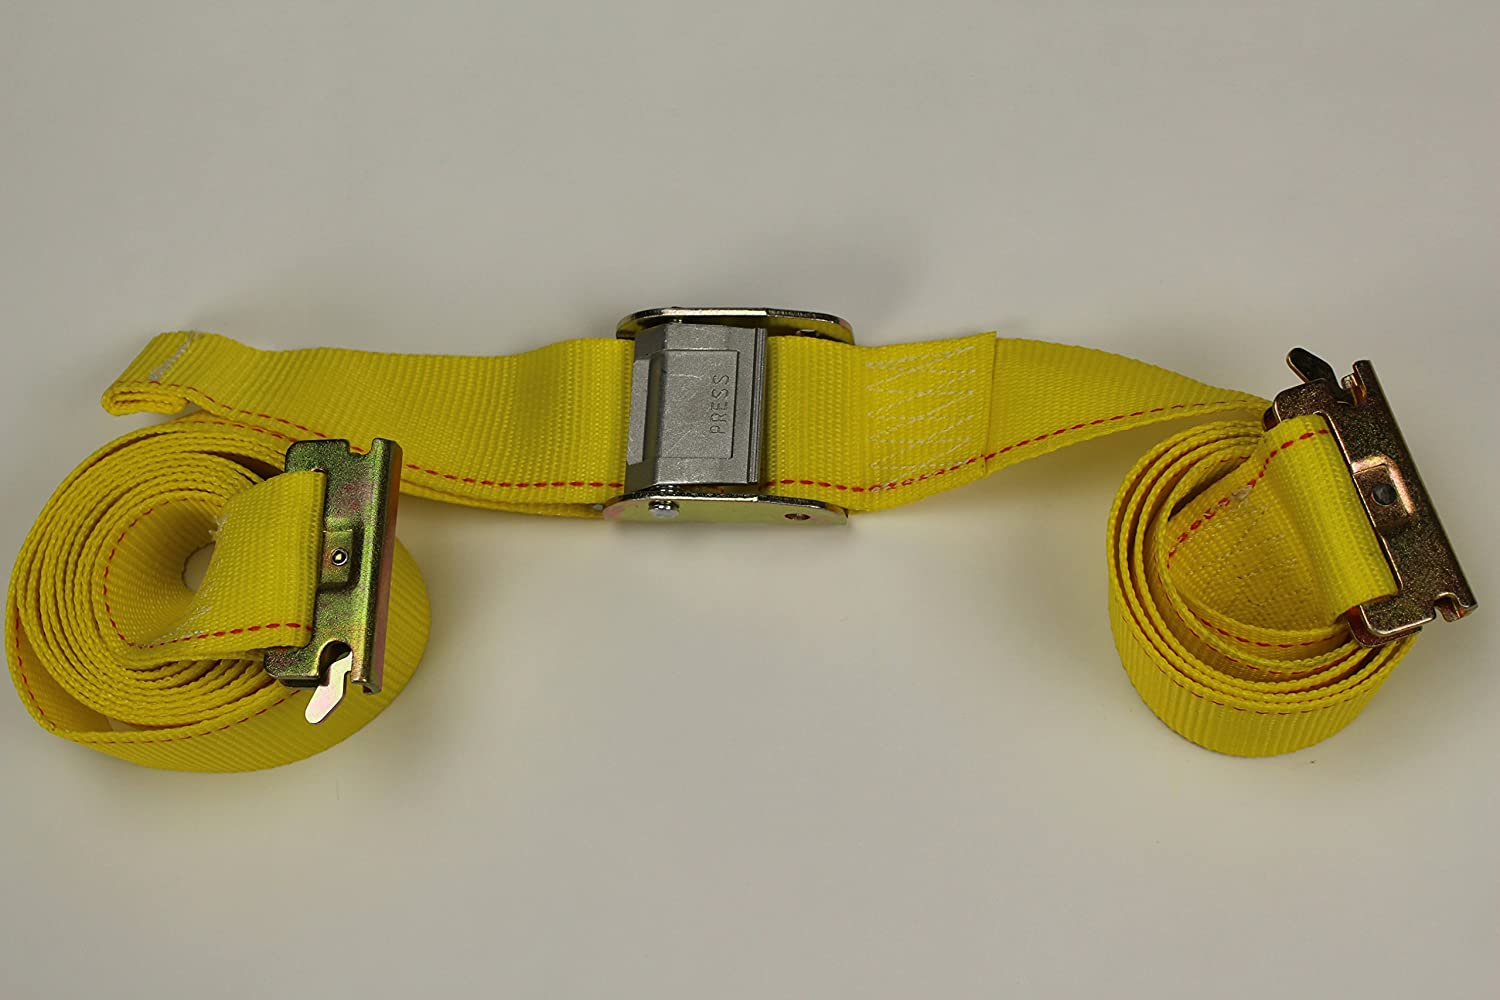 Boats Secure Motorcycles and Quads with Cam Straps 2 x 12 Cam Buckle TieDown Straps for Cargo on Trucks 10 Tie-Down Straps Trailers Vans